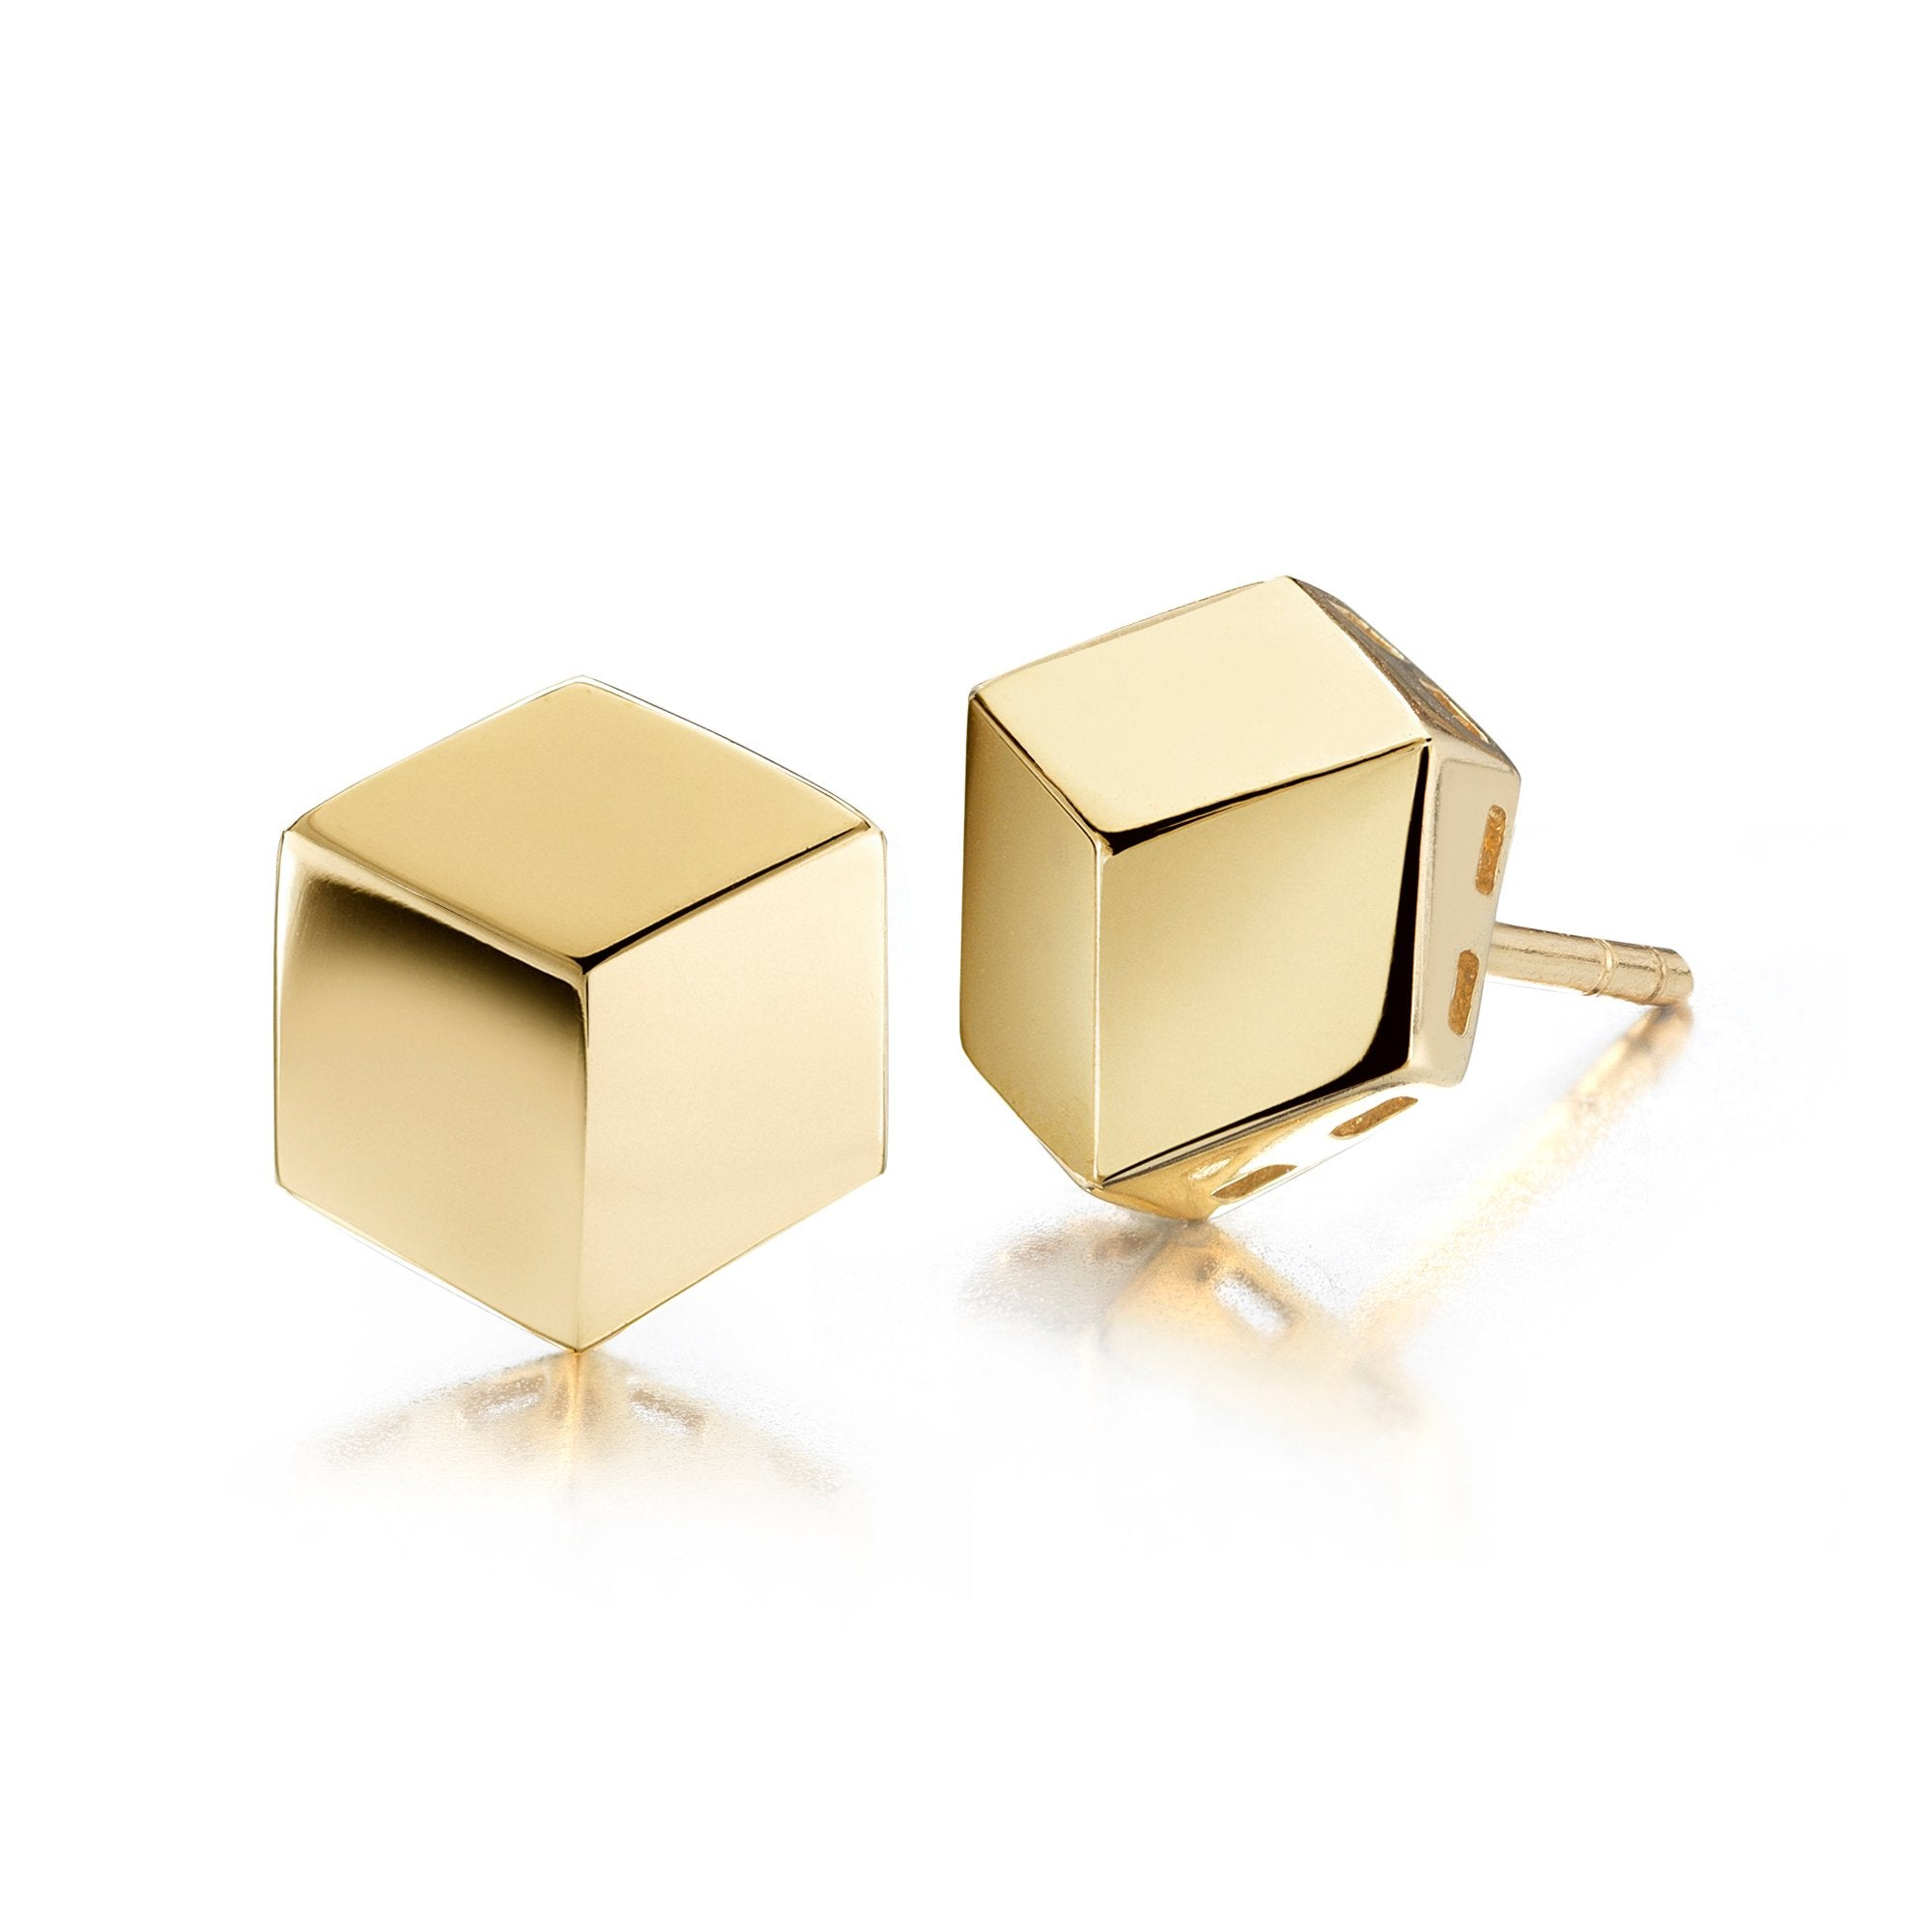 Yellow Gold 'Brillante®' Stud Earrings, Petite - Paolo Costagli - 1